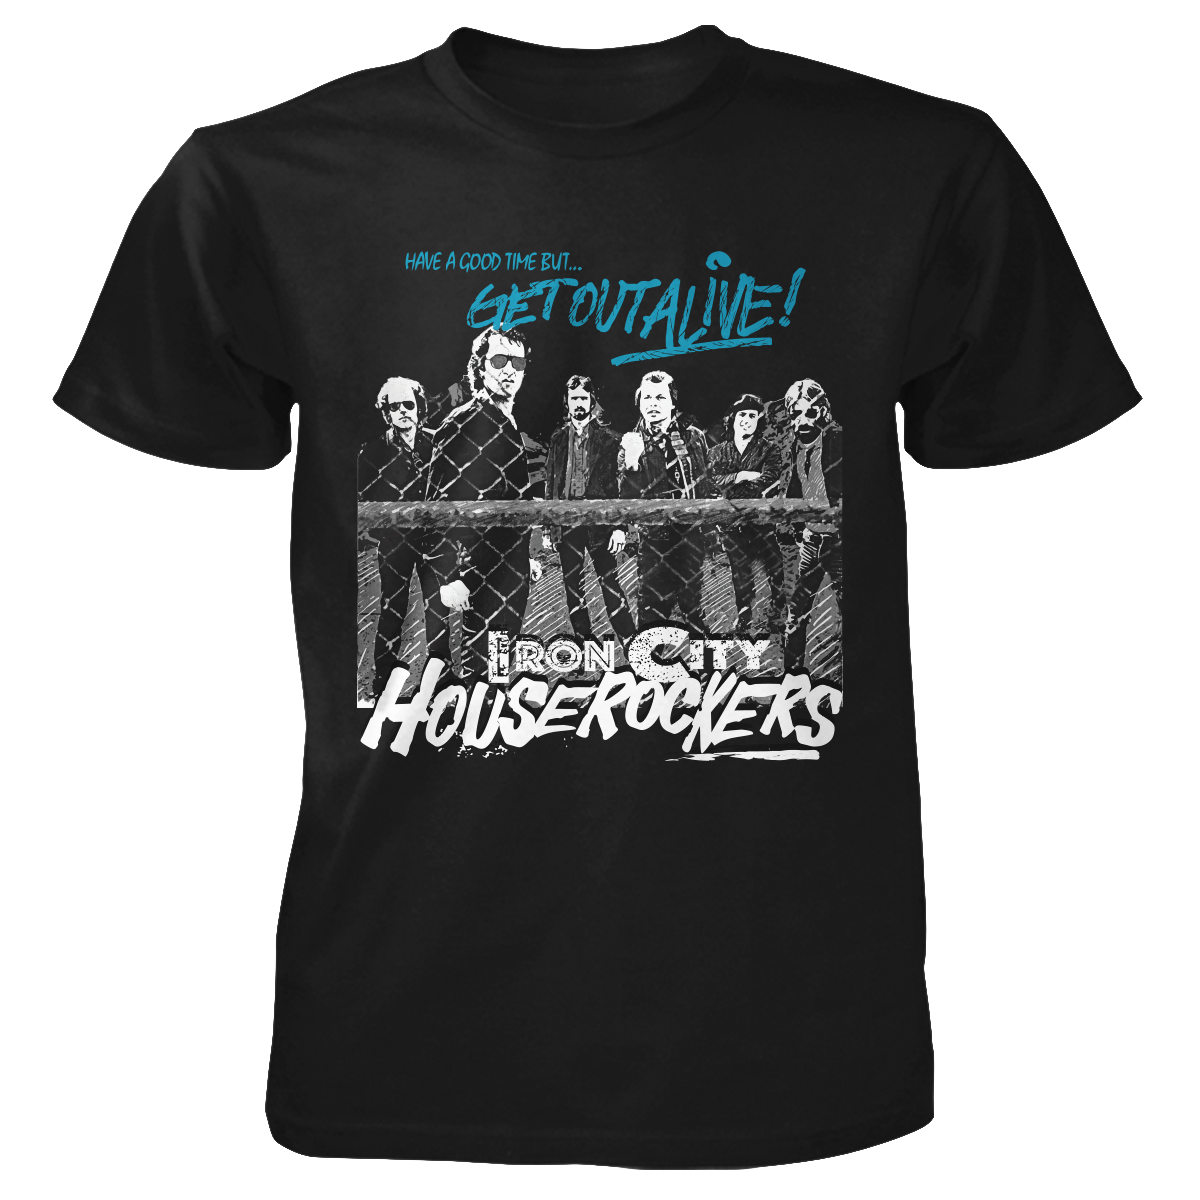 Iron City Houserockers T-Shirt